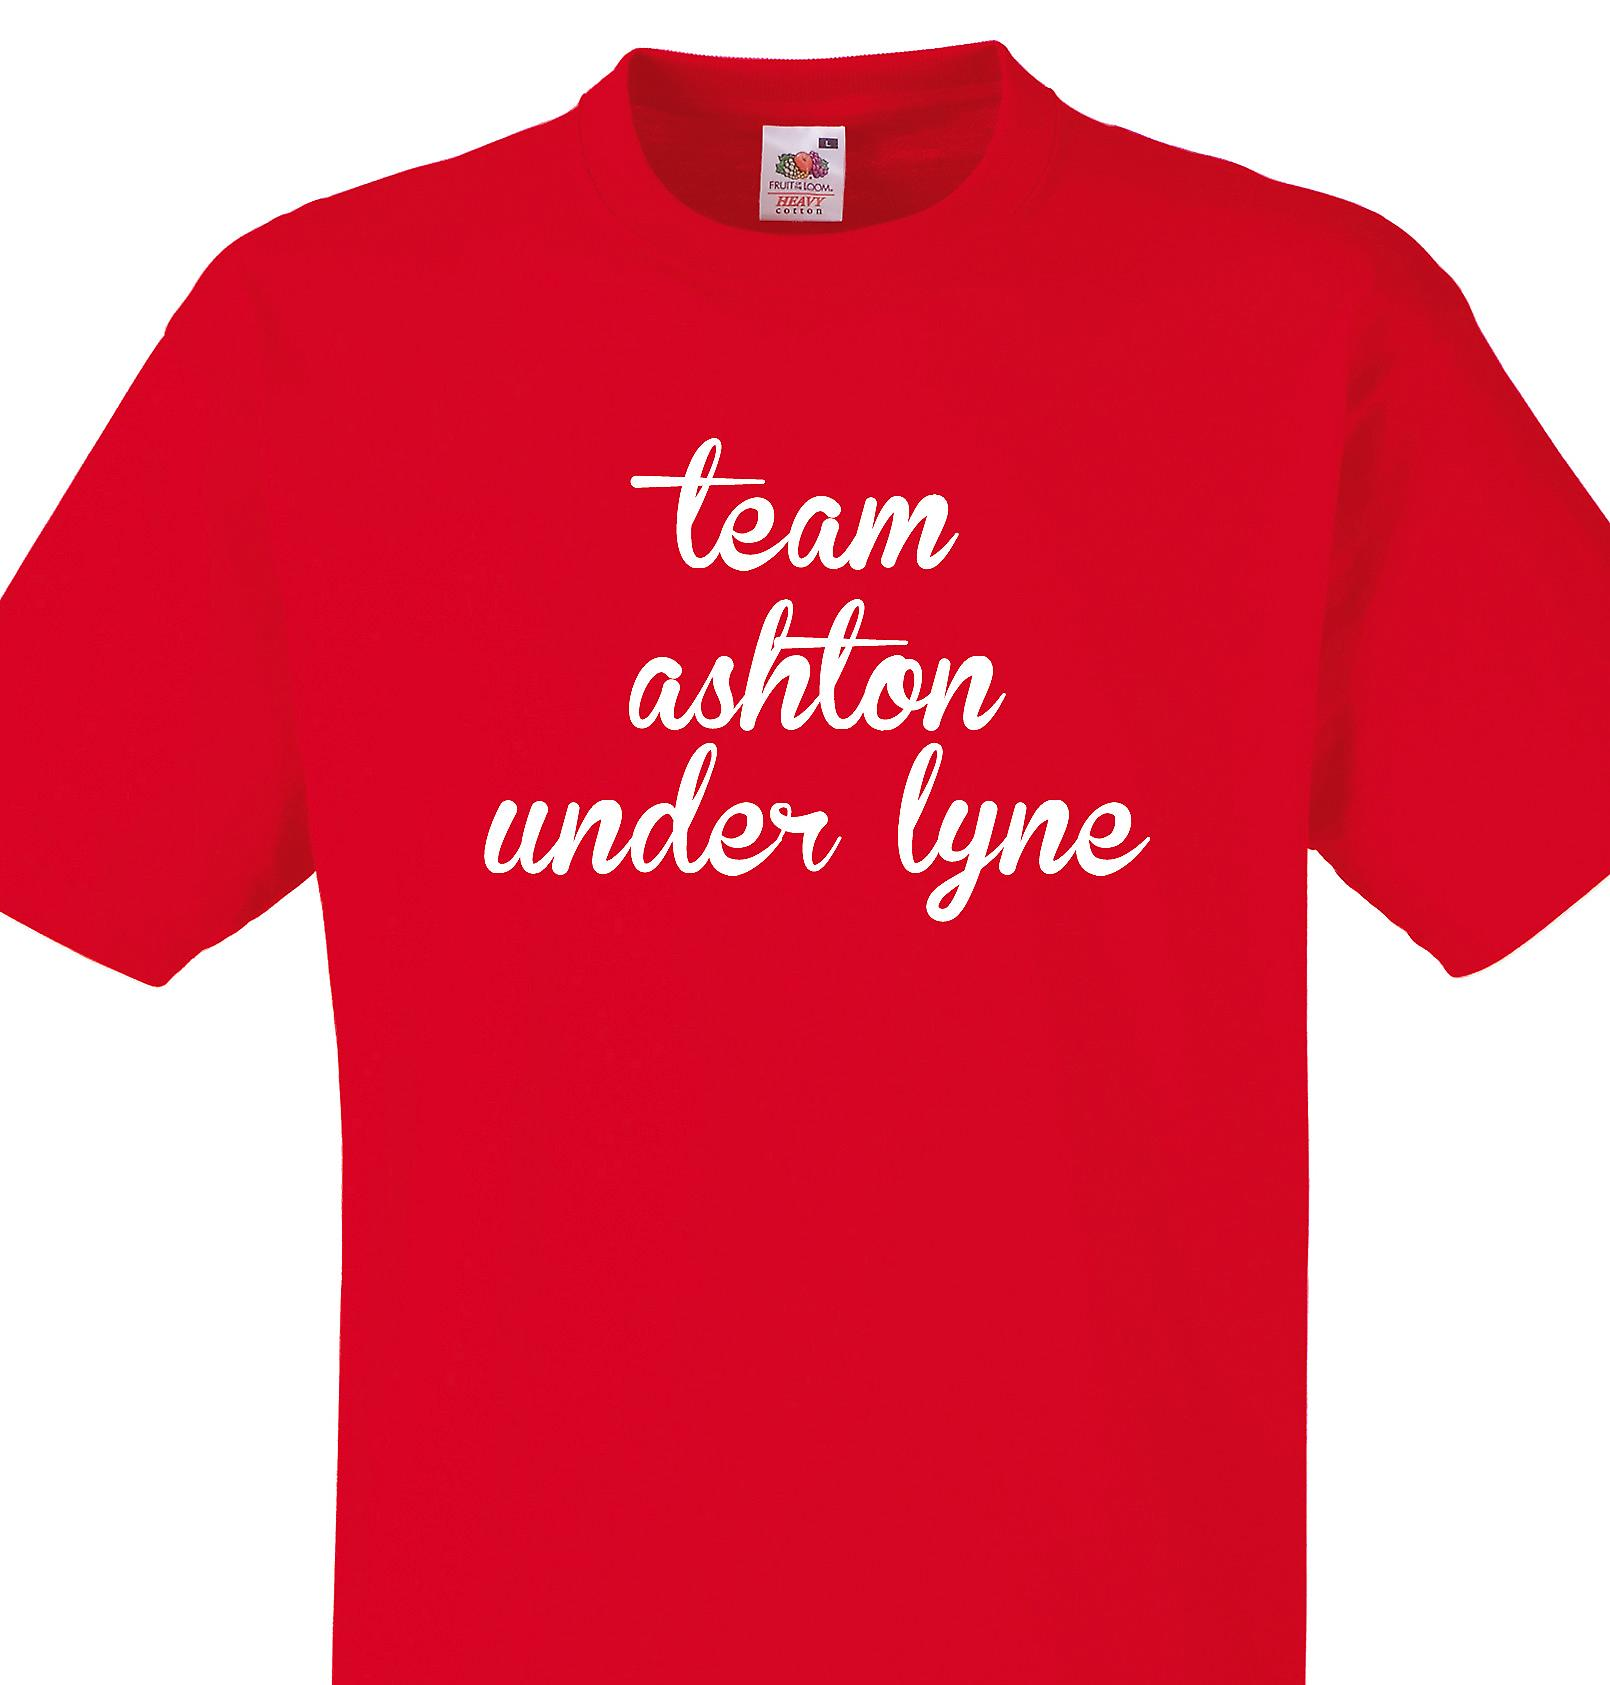 Team Ashton under lyne Red T shirt